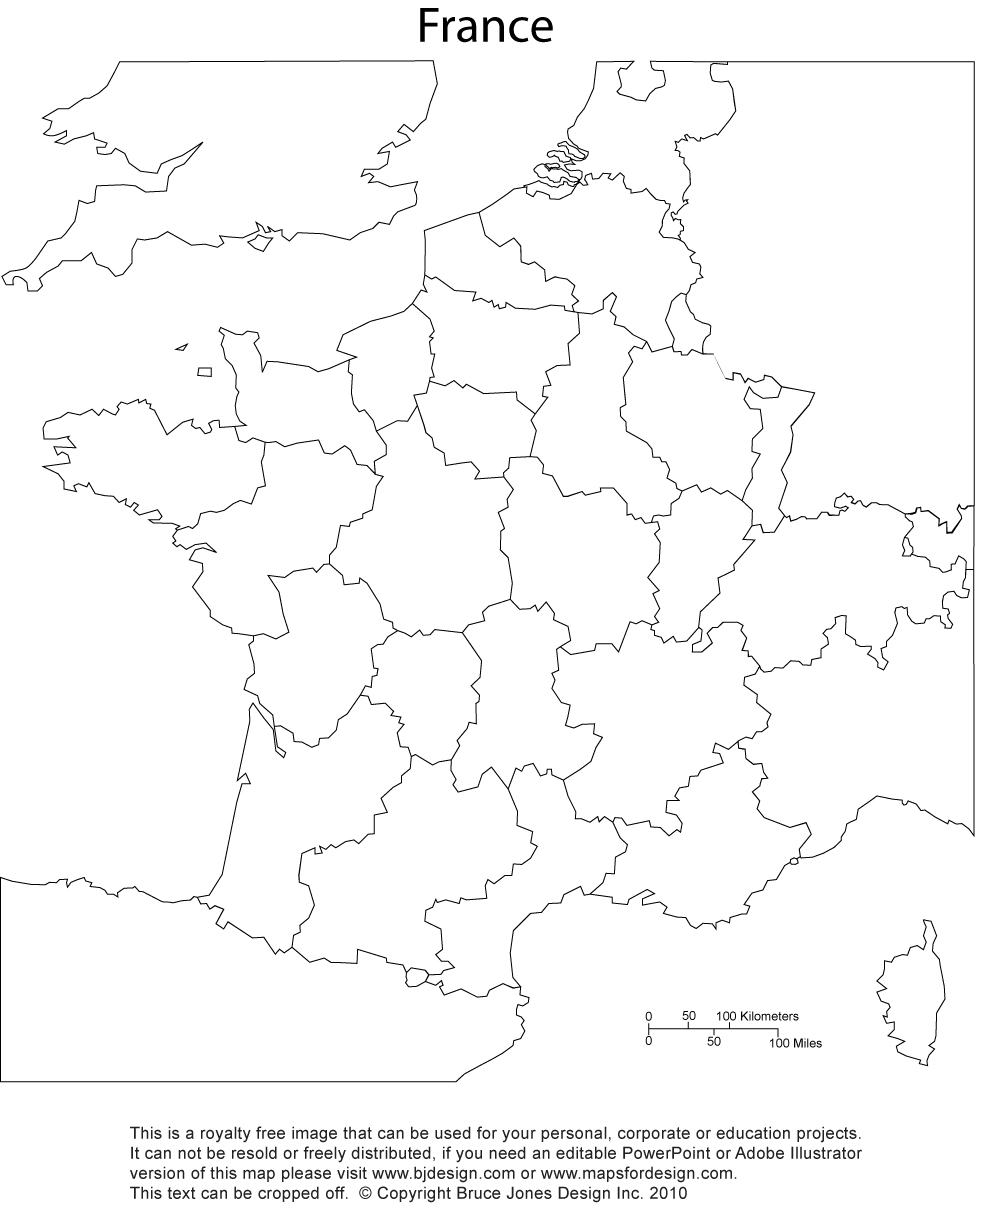 Map Of France Printable.France Map Printable Blank Royalty Free Jpg